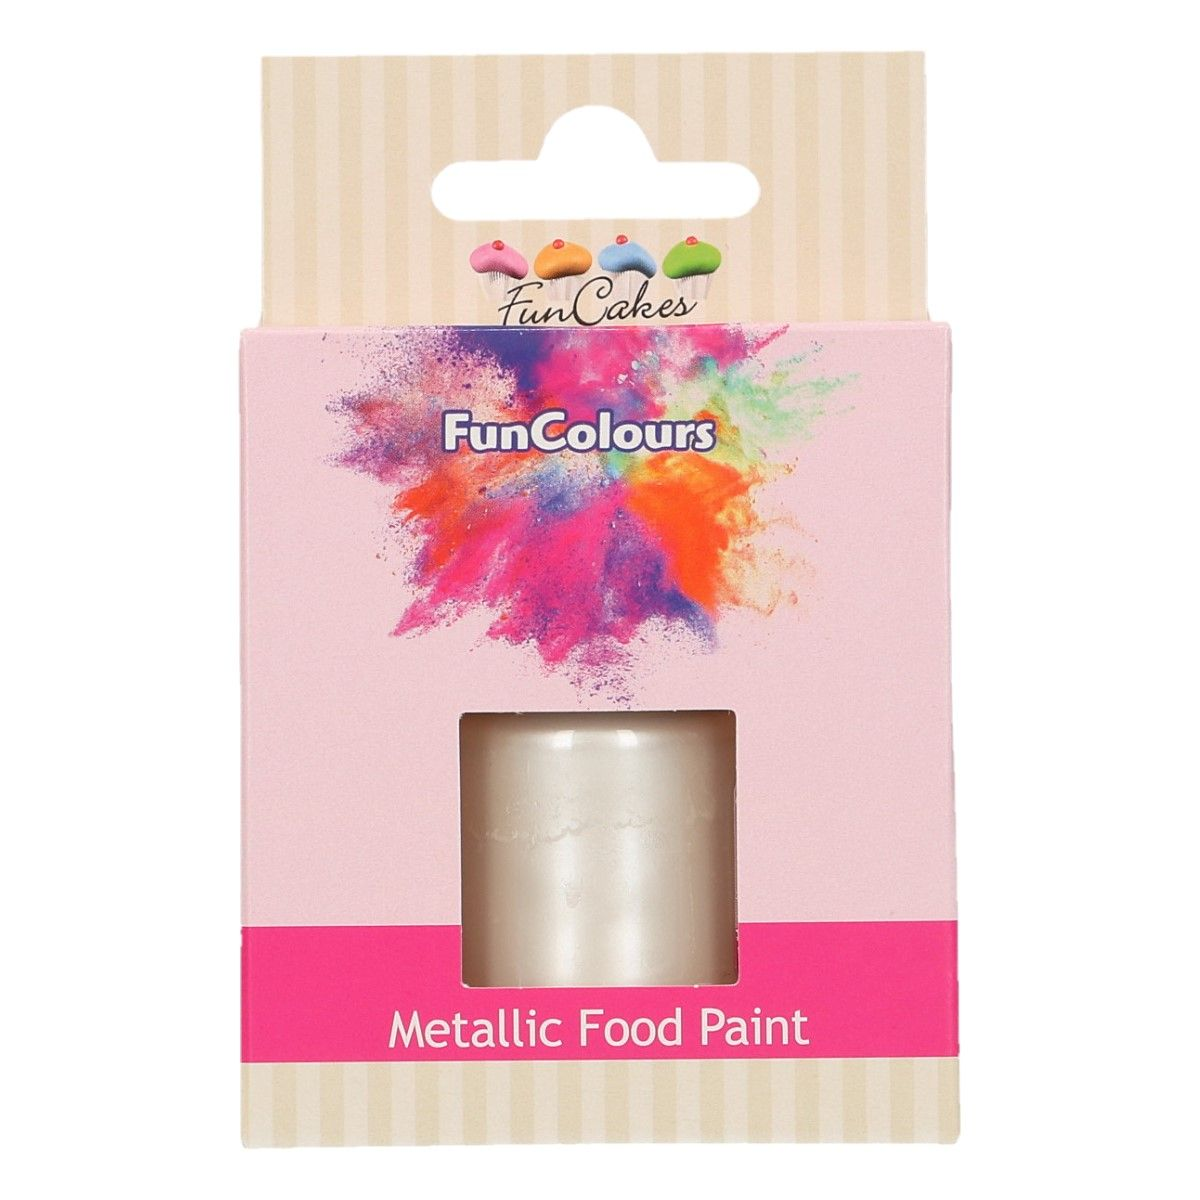 FunCakes Metallic Food Paint Pearl White 30ml